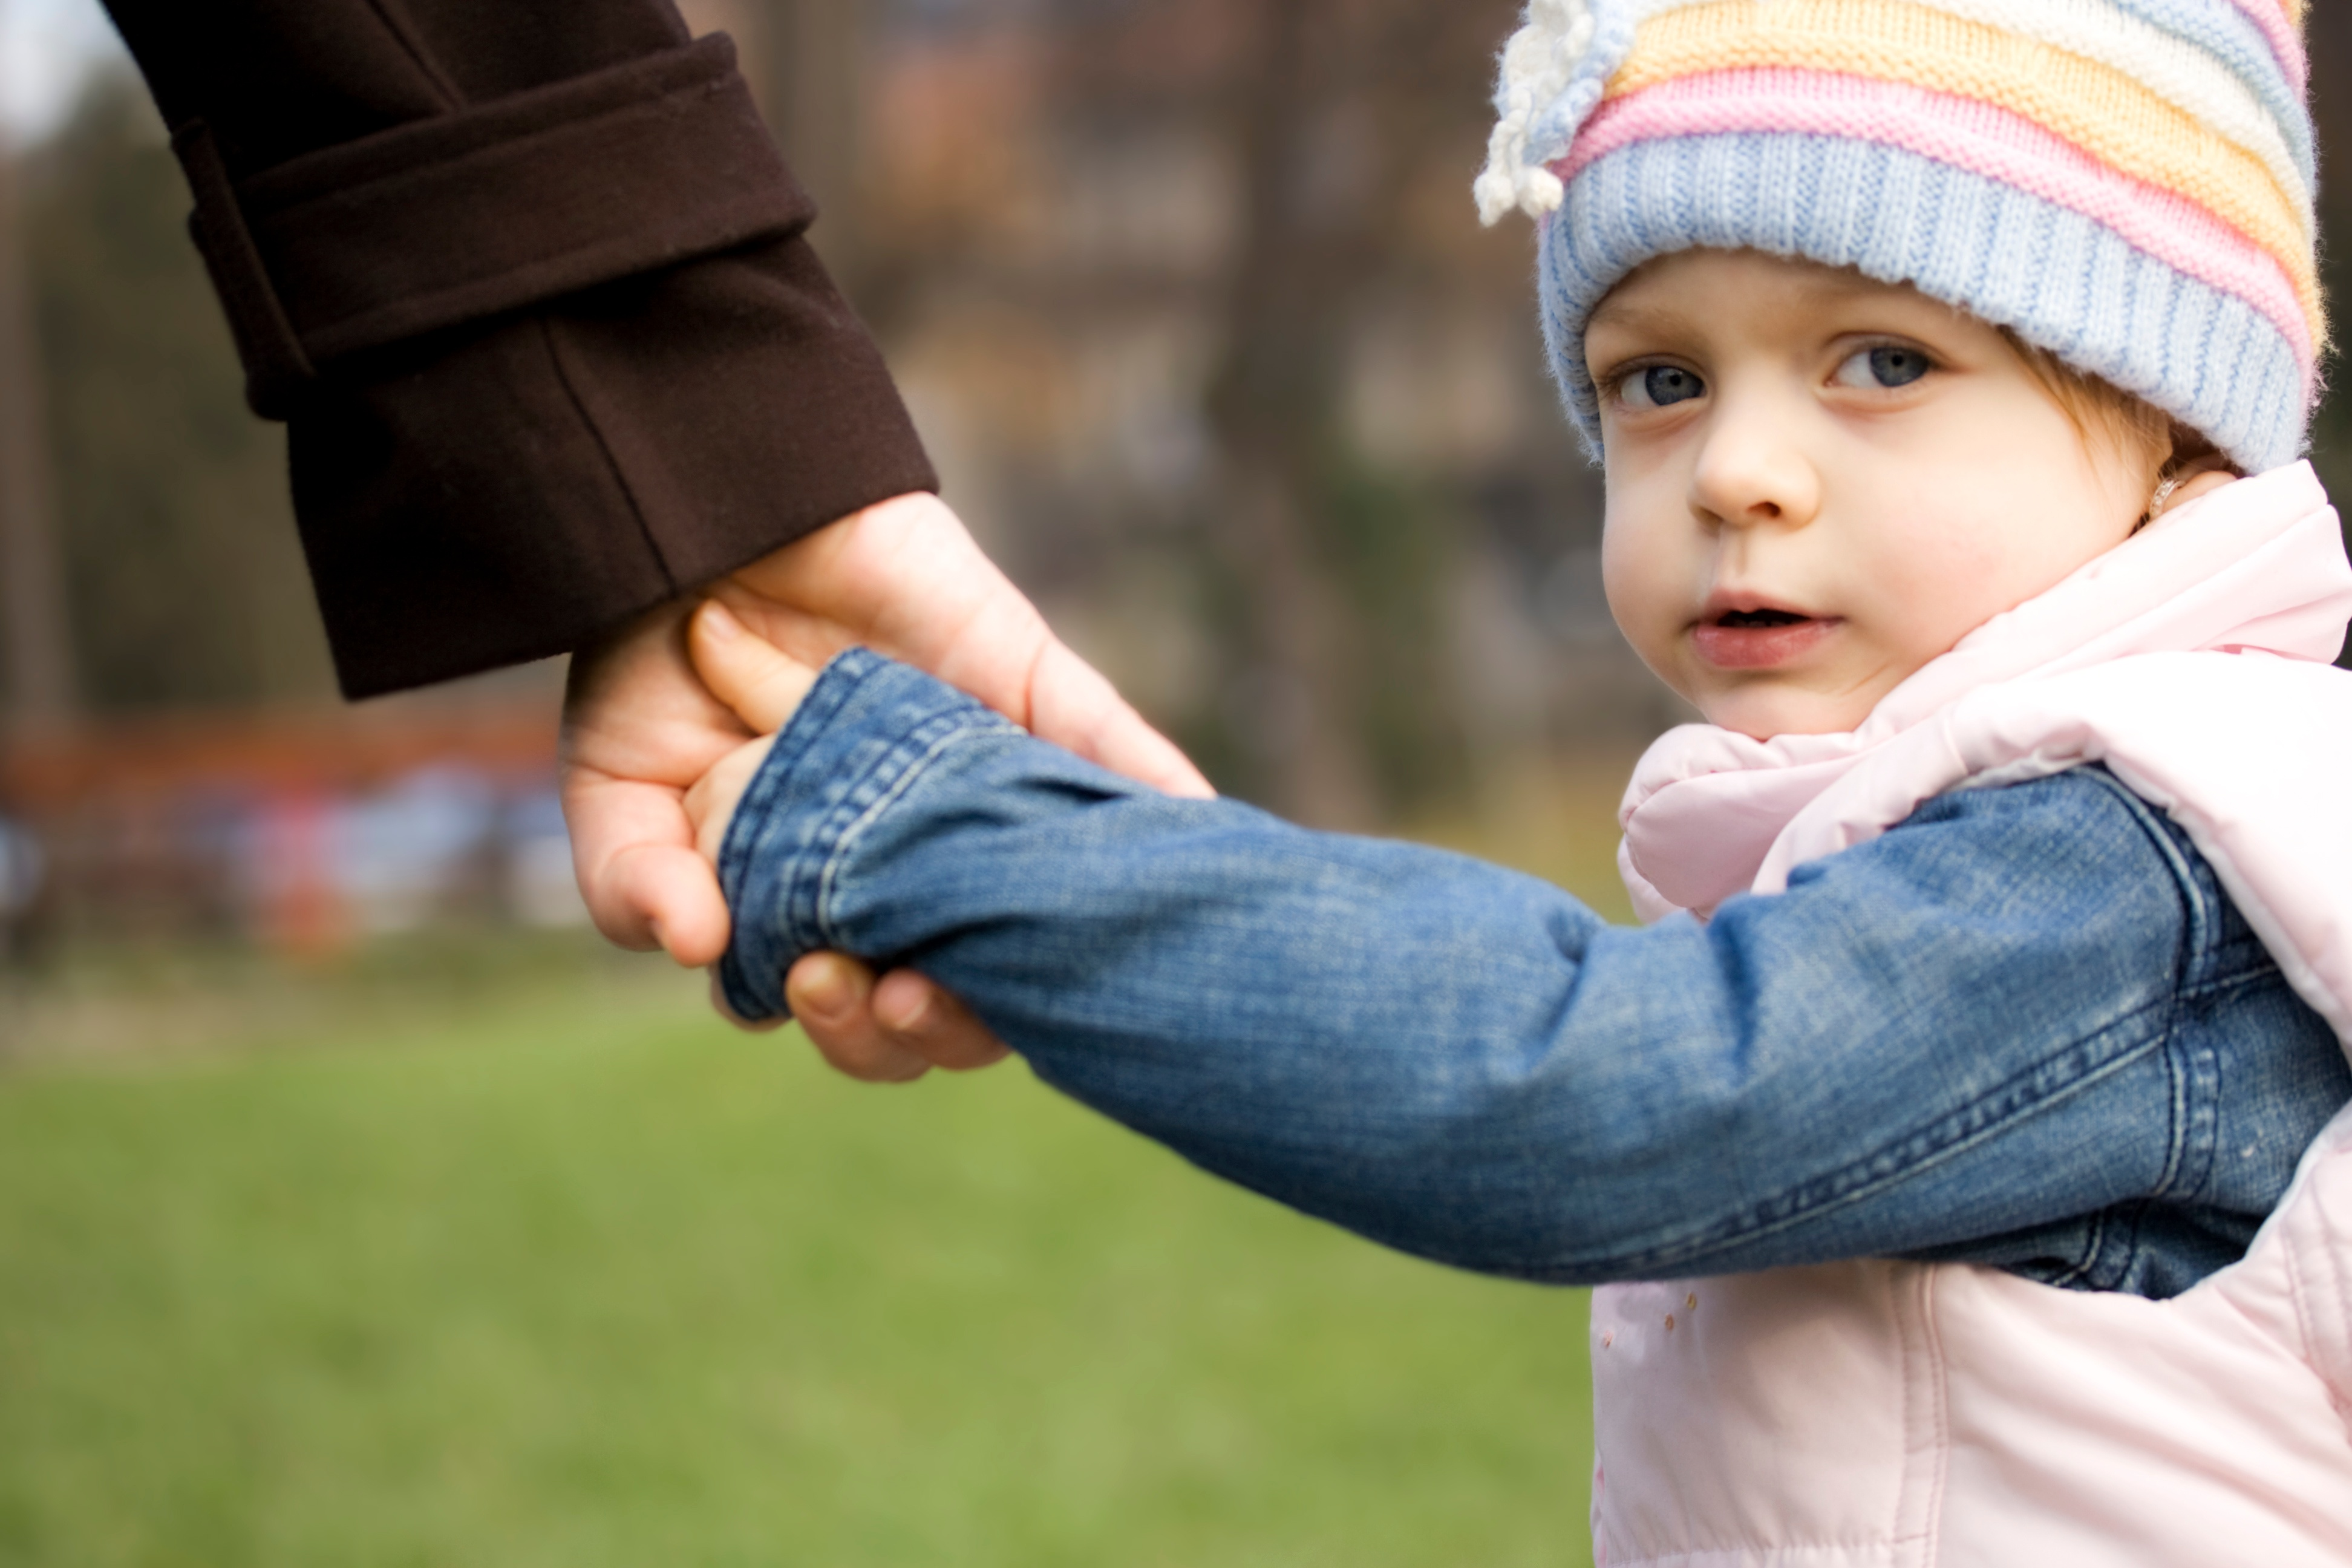 Child holding father's hand after child custody dispute